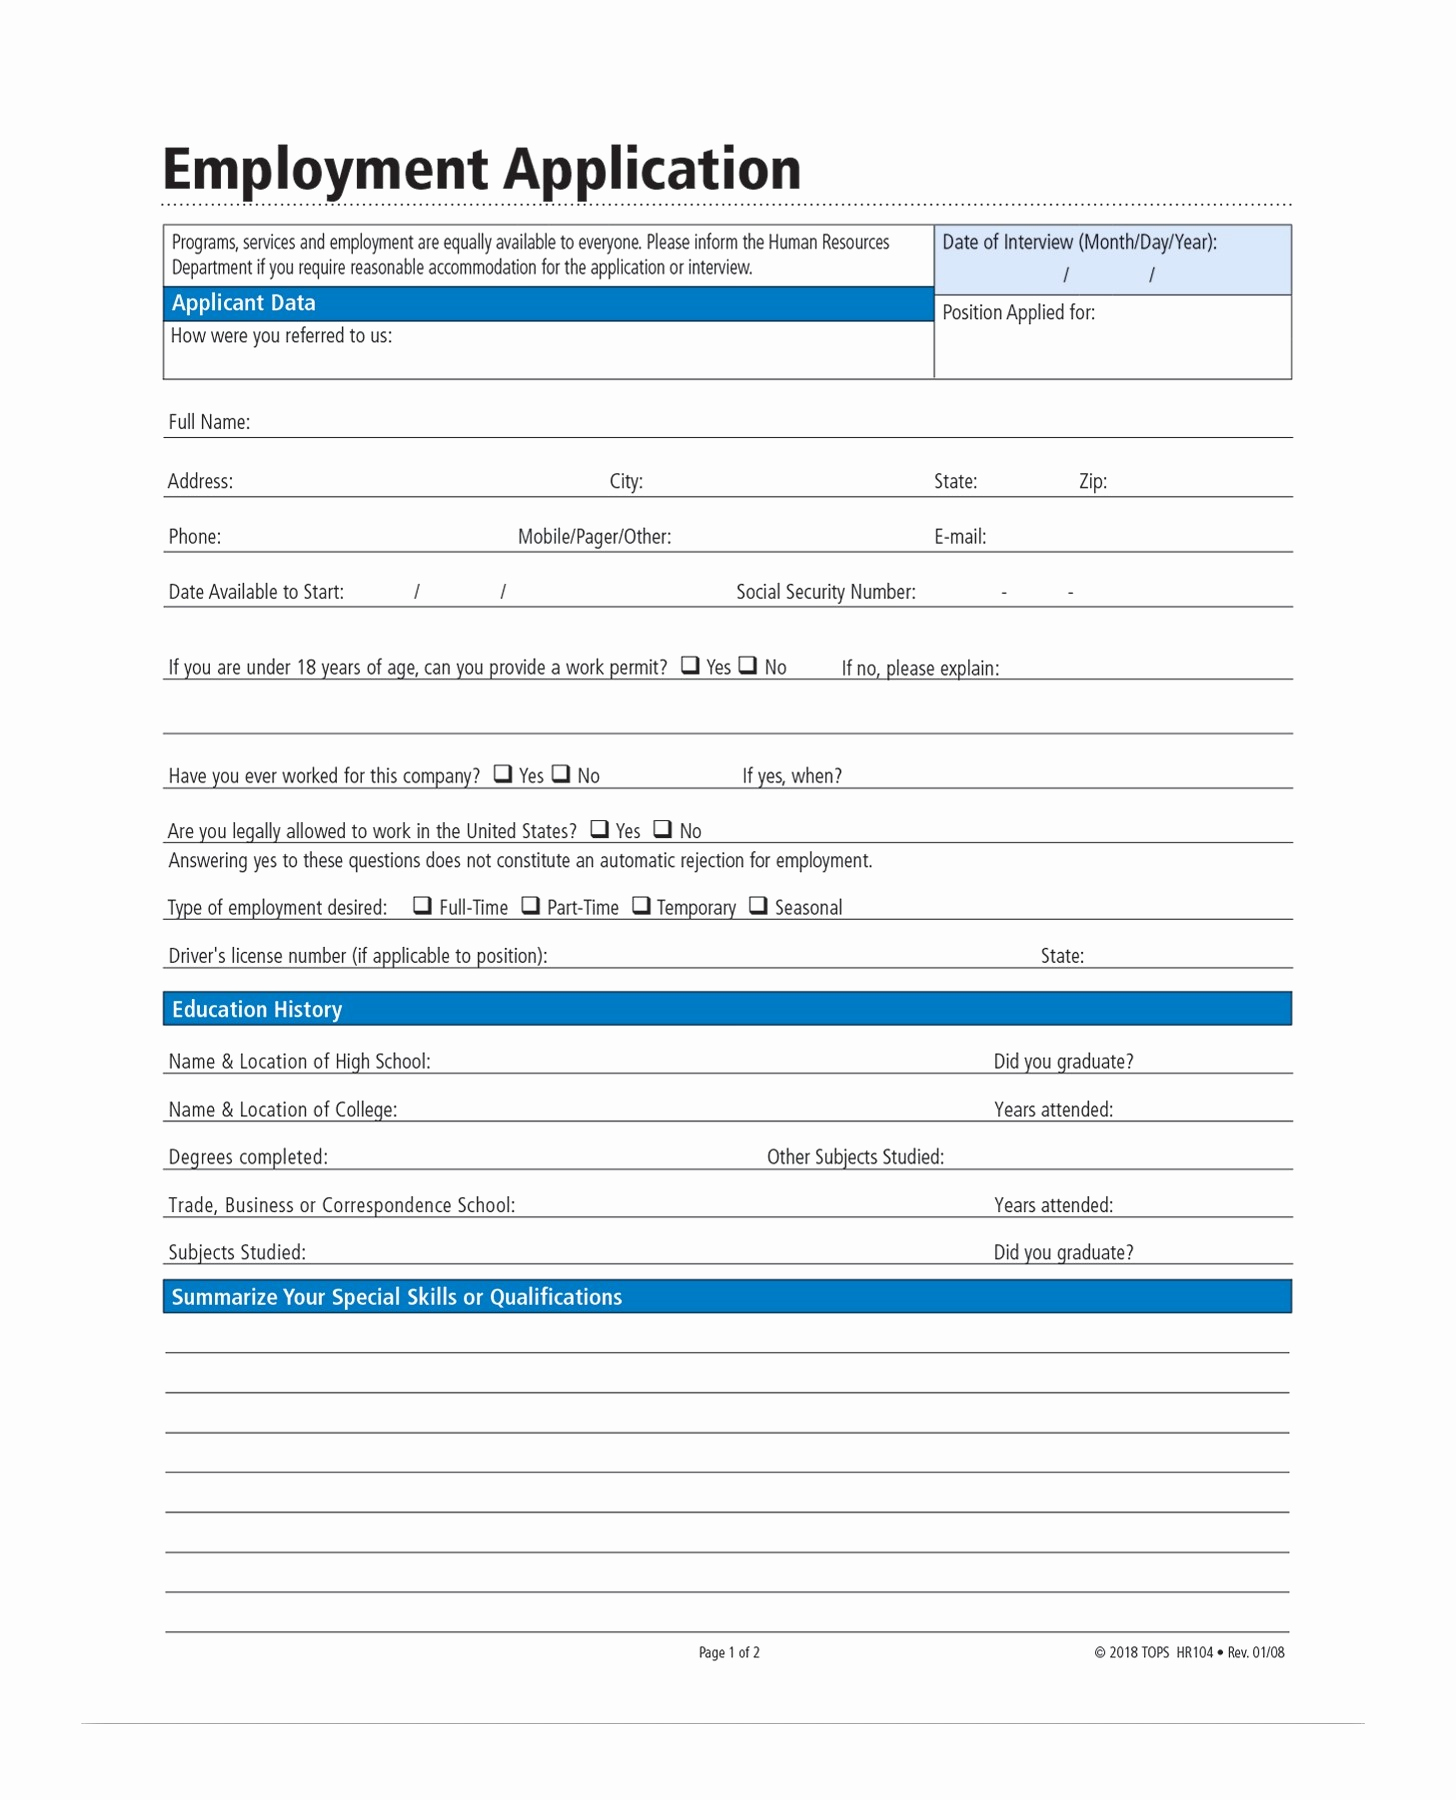 Standard Job Application forms Best Of Adams Application for Employment forms and Instructions